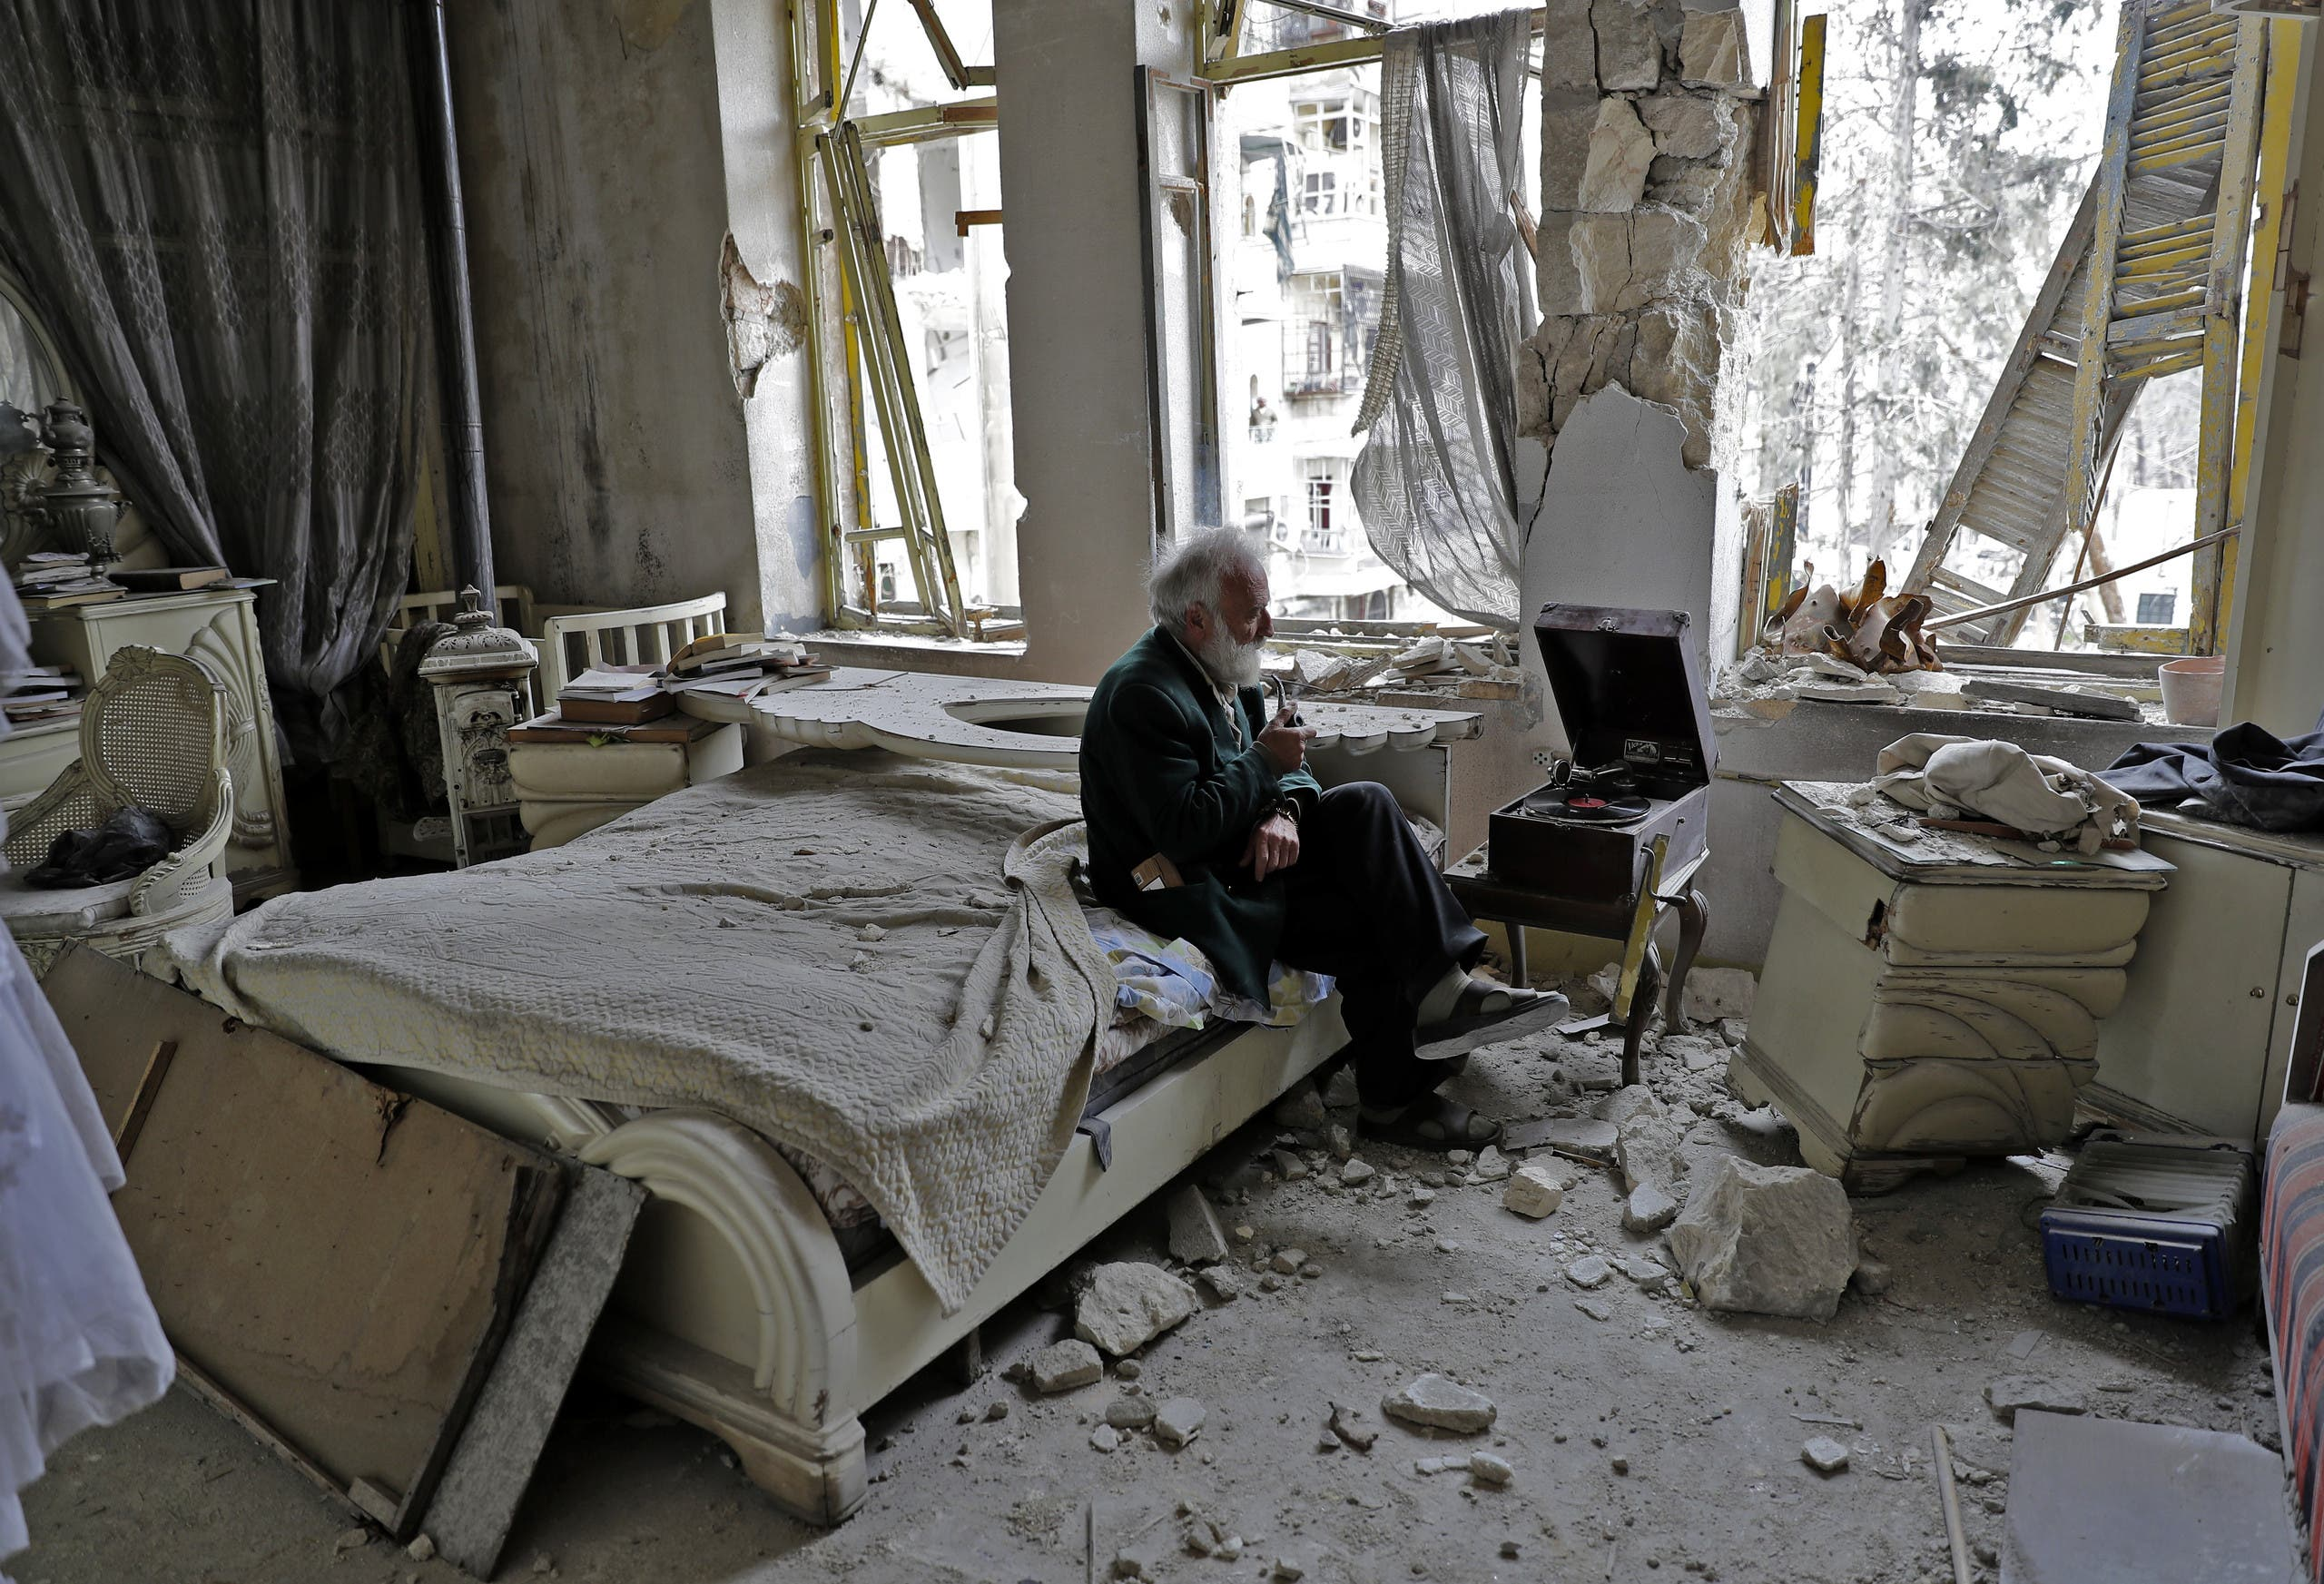 Mohammad Mohiedine Anis, 70, smokes his pipe as he sits in his destroyed bedroom listening to music on his vinyl player in Aleppo's formerly rebel-held al-Shaar neighbourhood. AFP